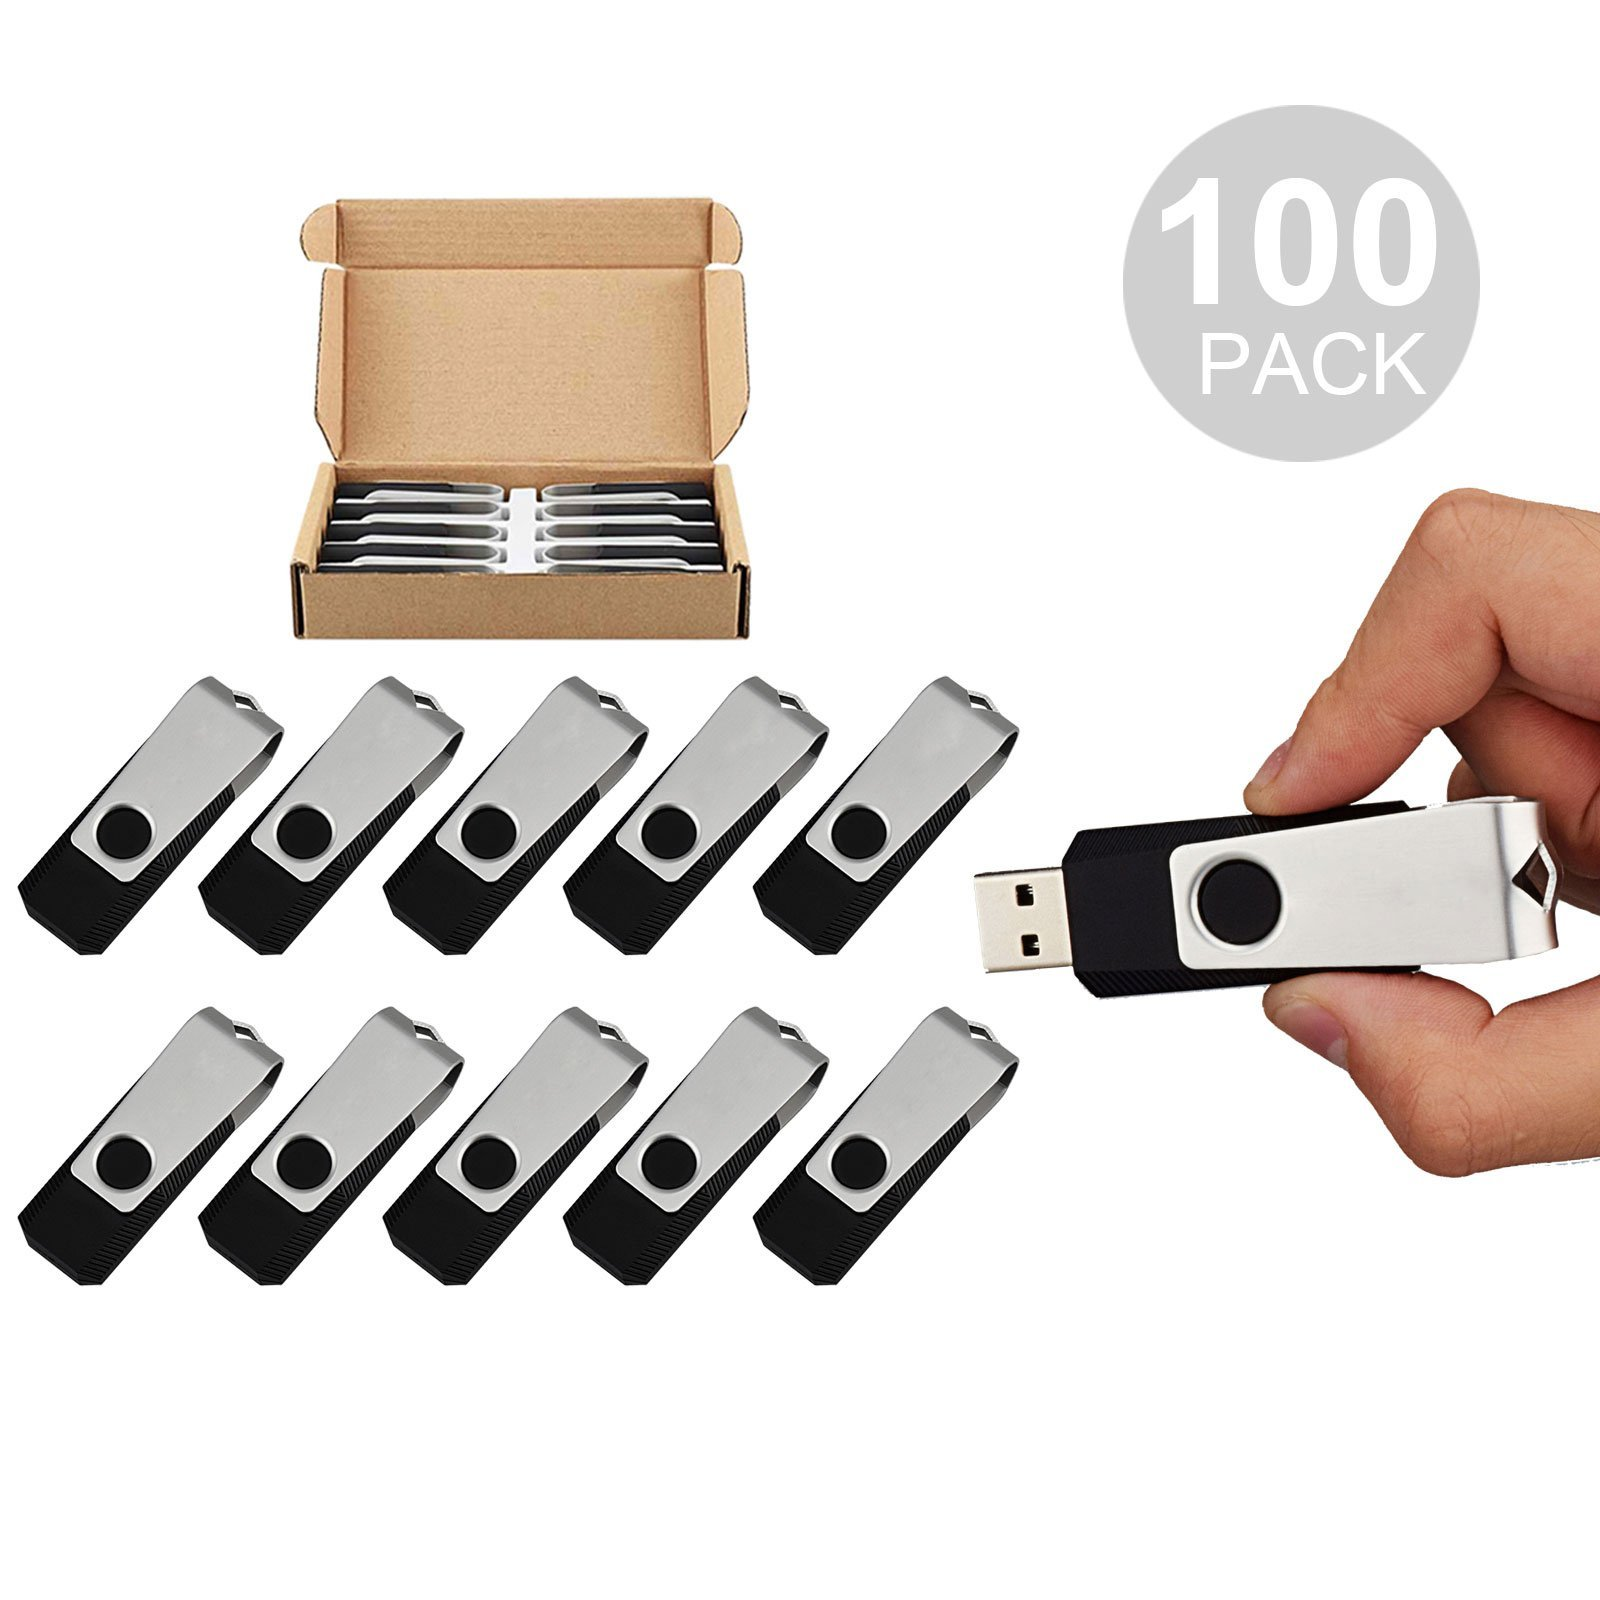 TOPESEL 100PCS 16GB Bulk USB 2.0 Flash Drive Swivel Memory Stick Thumb Drives Pen Drive (16G, 100 Pack, Black)